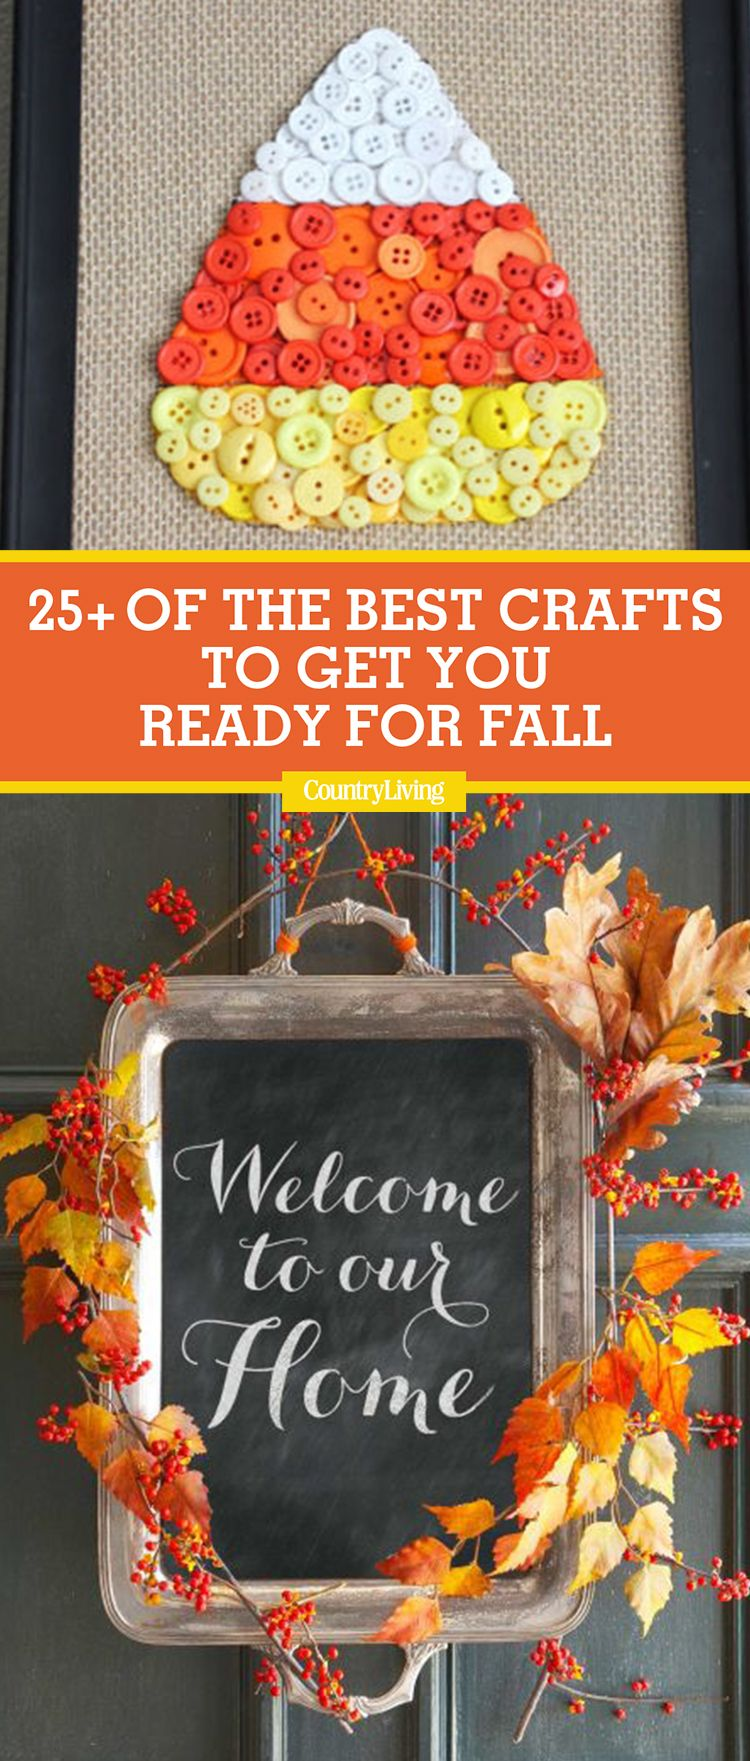 25 best fall crafts easy diy home decor ideas for fall - Fall Crafts